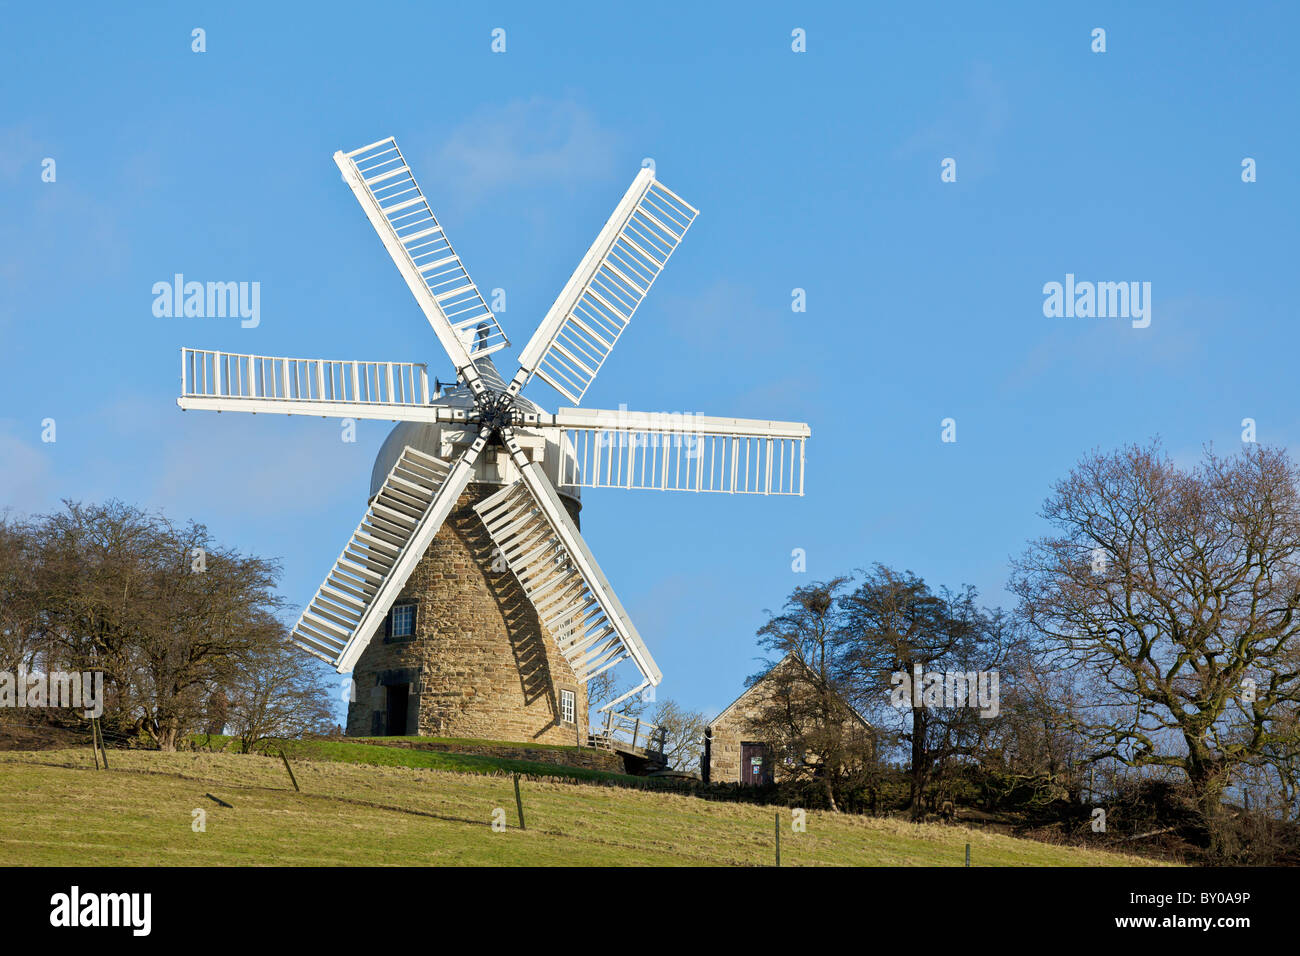 Heage Windmill a six sailed stone windmill Heage village derbyshire england uk gb eu europe - Stock Image